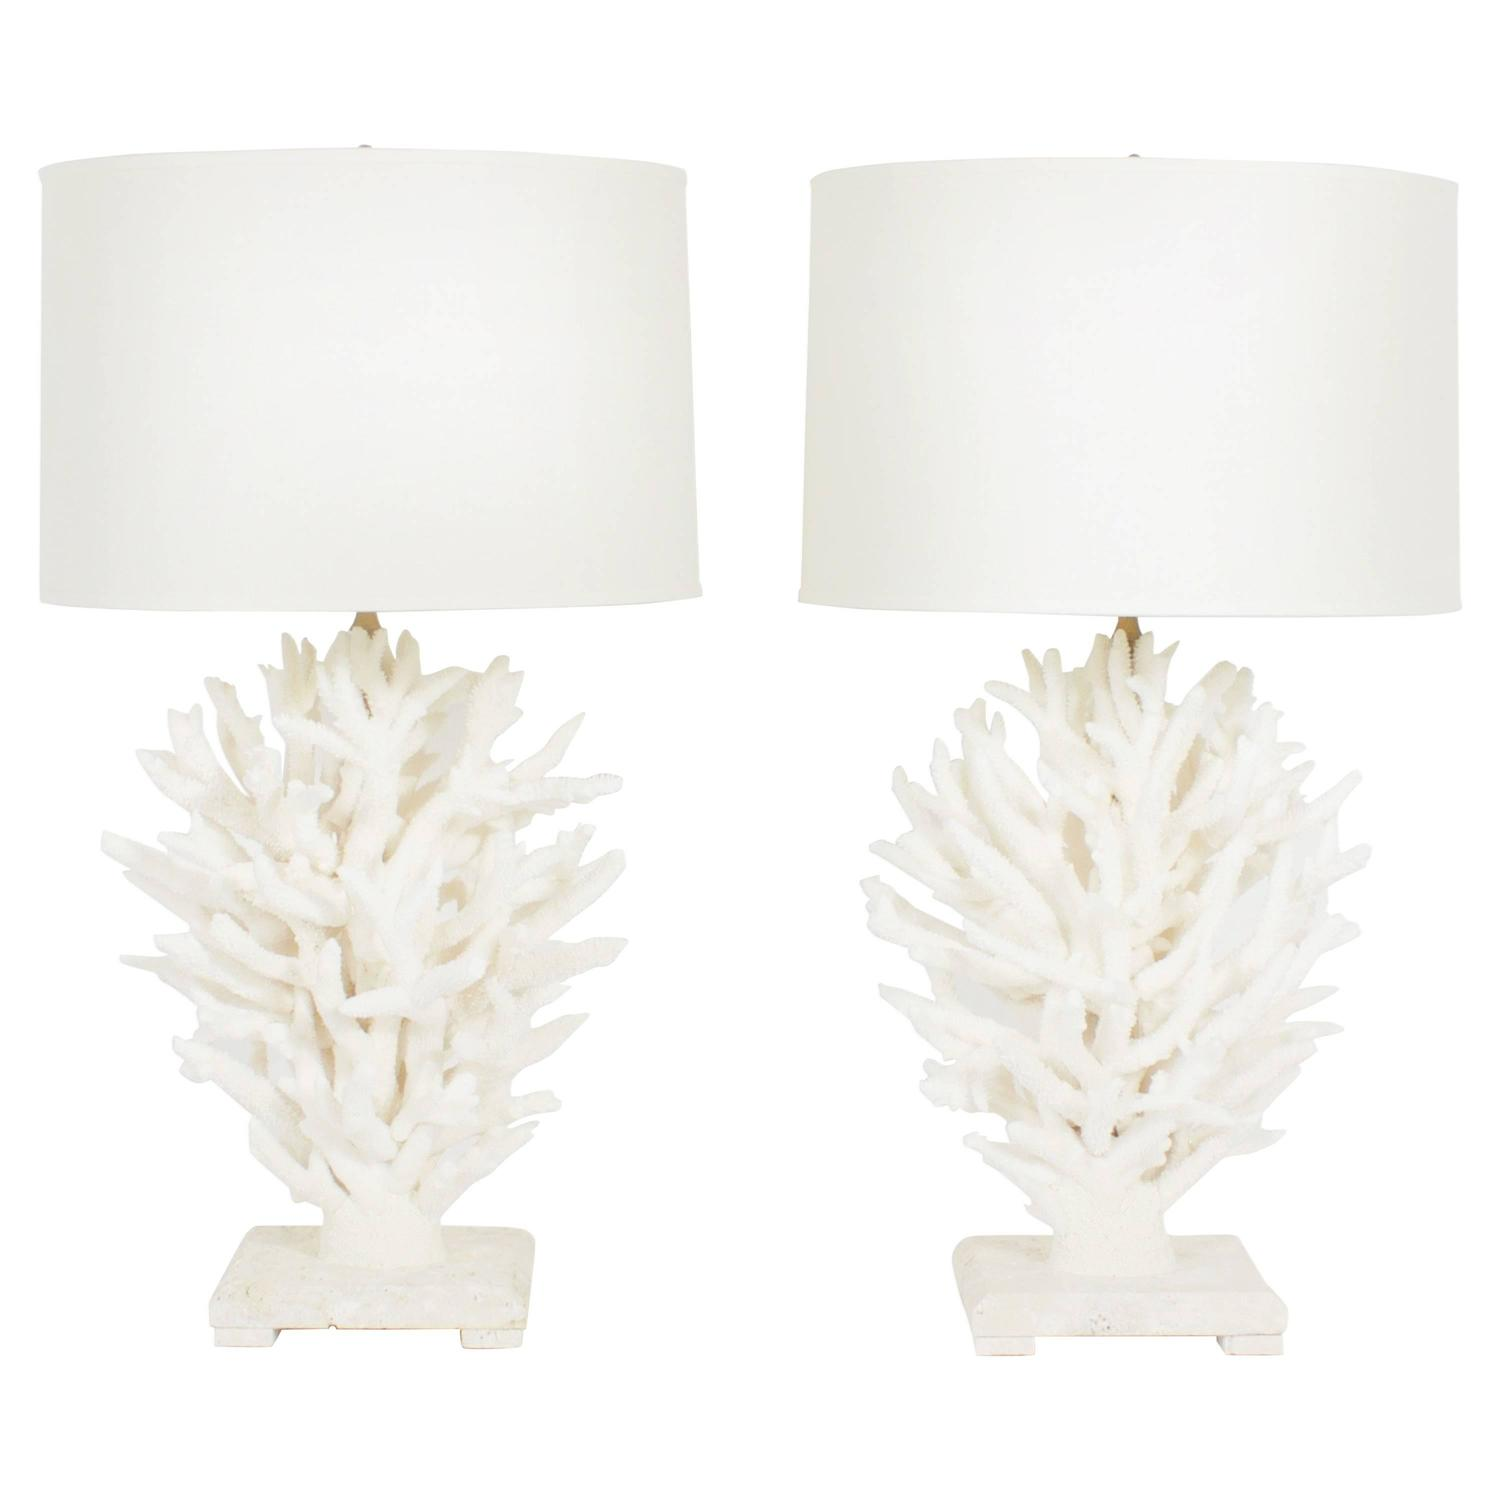 of sculptural staghorn white coral table lamps for sale at 1stdibs. Black Bedroom Furniture Sets. Home Design Ideas